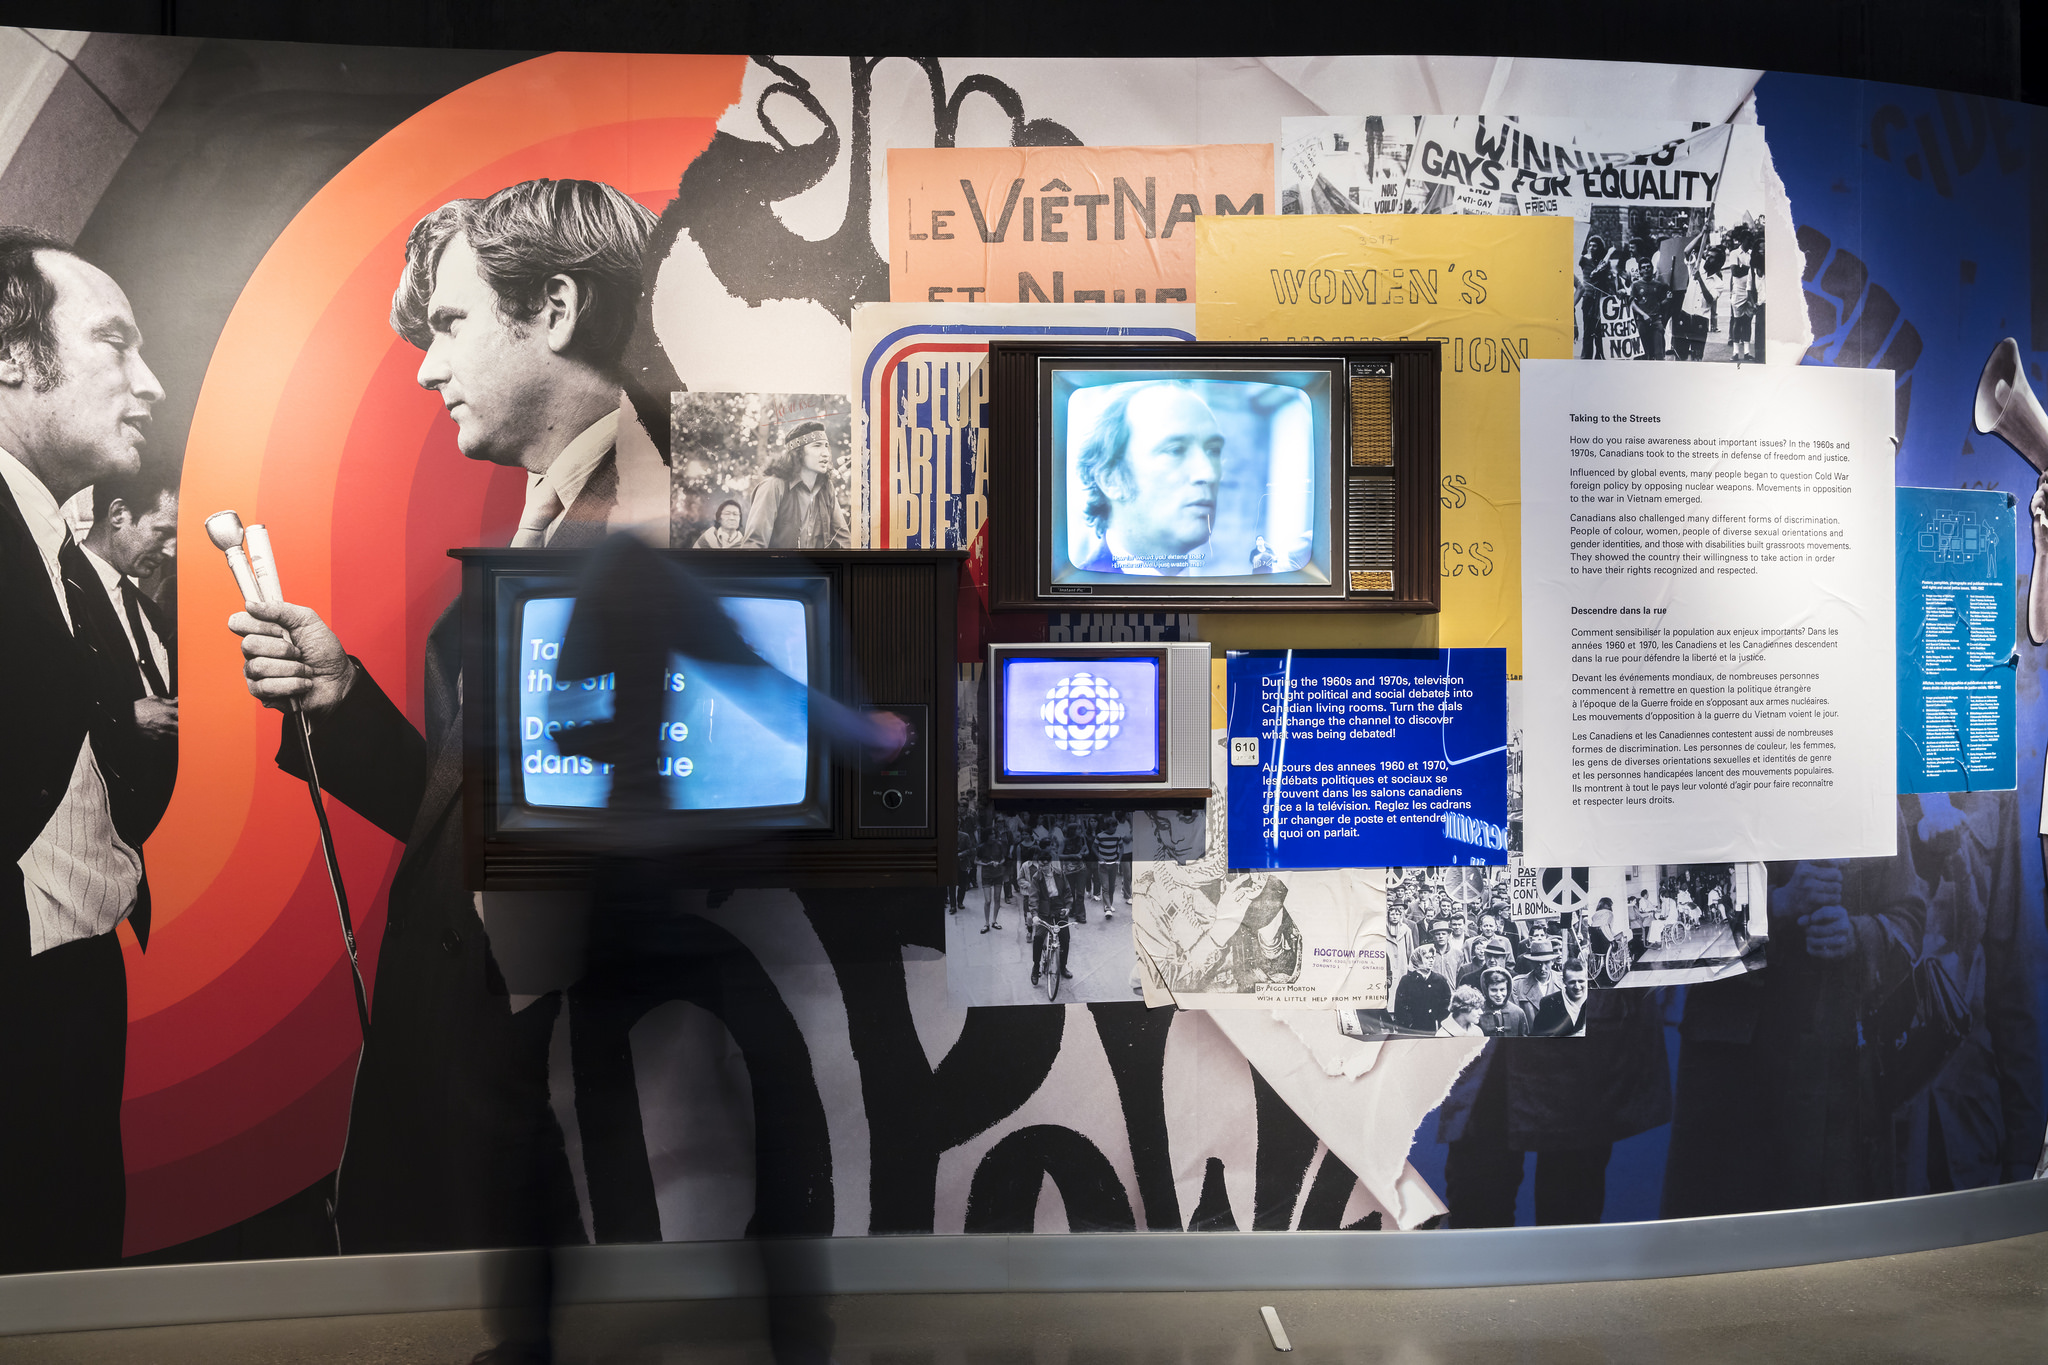 Three faces of television sets emerge from a wall covered in museum text. A blurred figure is turning one of the dials on the television.